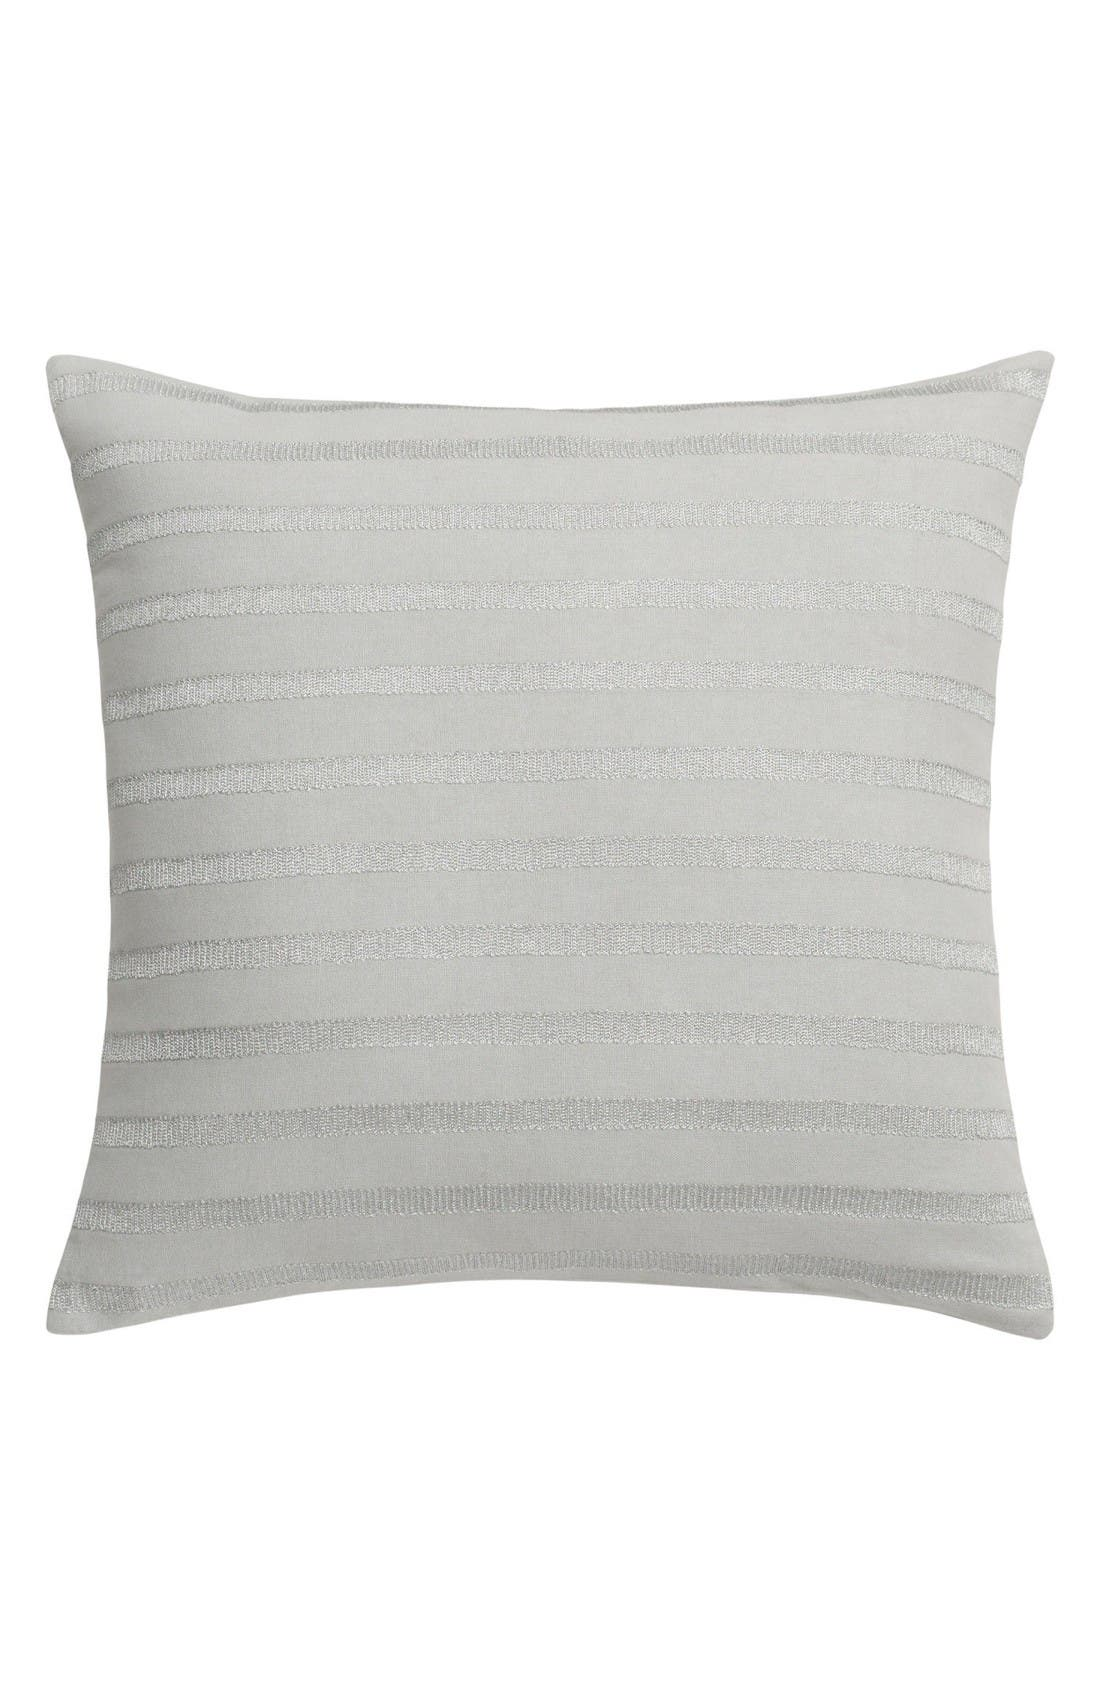 Capri Stripe Accent Pillow,                         Main,                         color, Silver